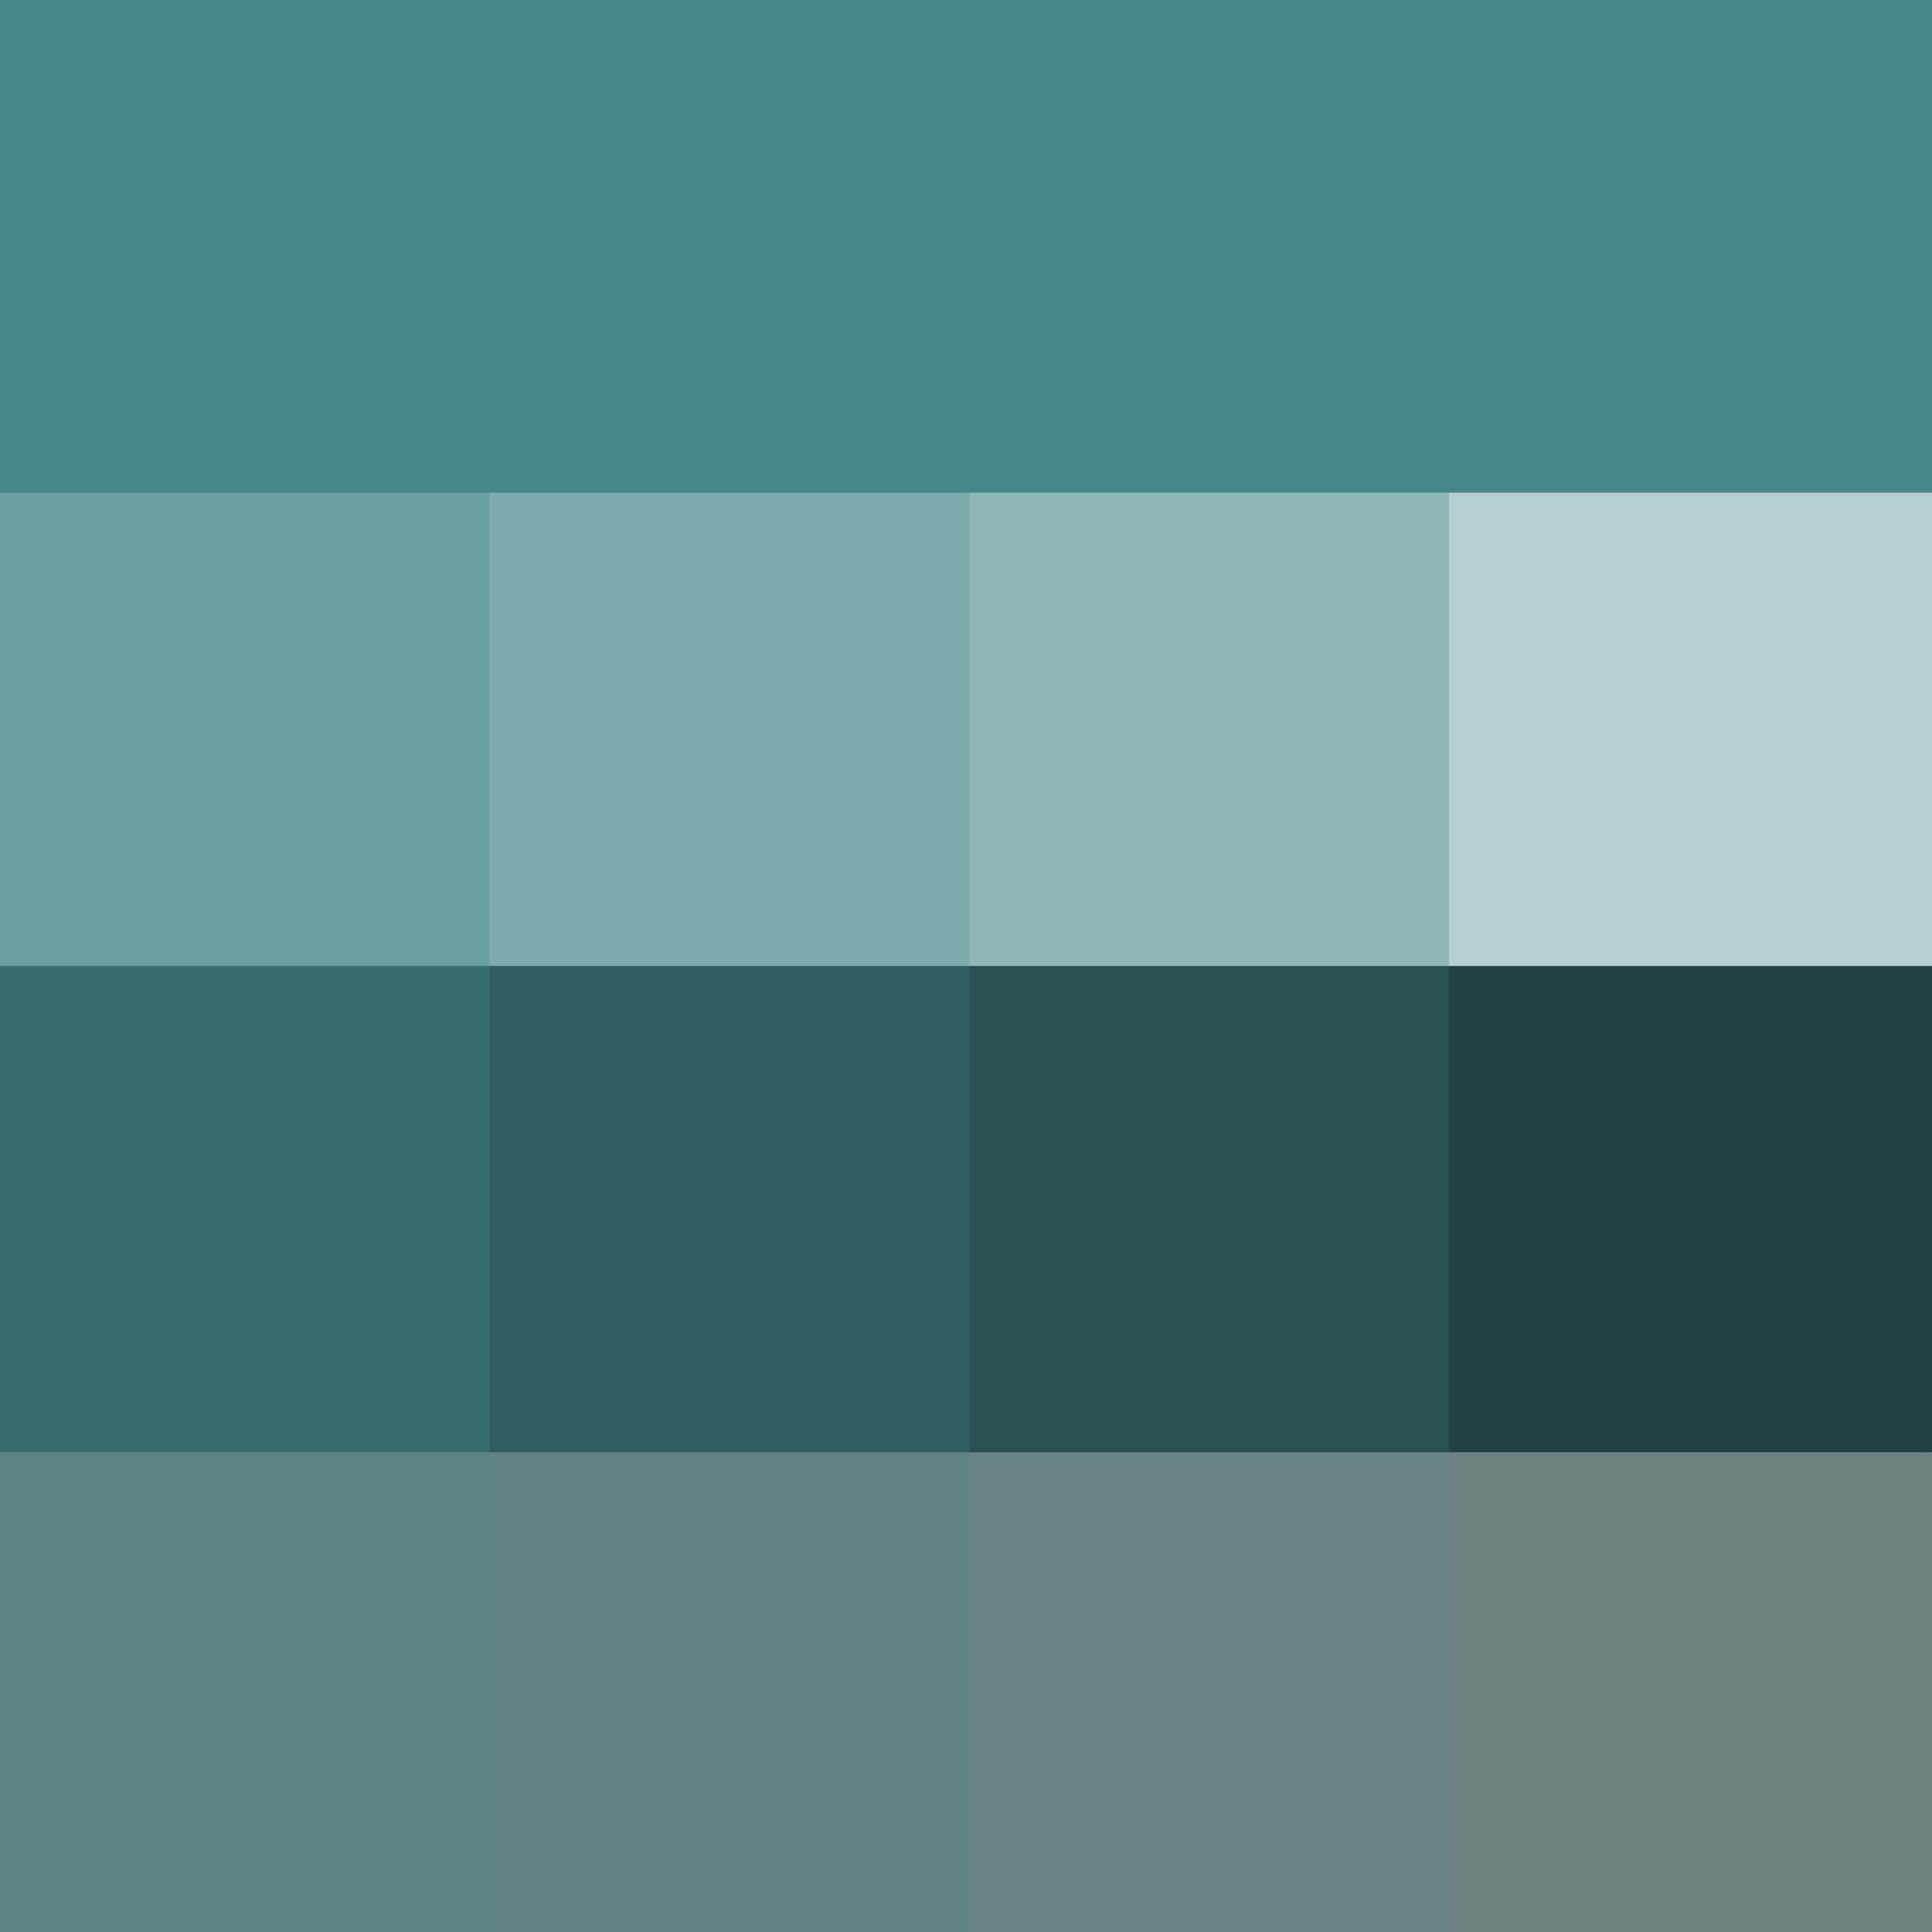 pantone teal hue pure color with tints hue white shades hue black and tones. Black Bedroom Furniture Sets. Home Design Ideas